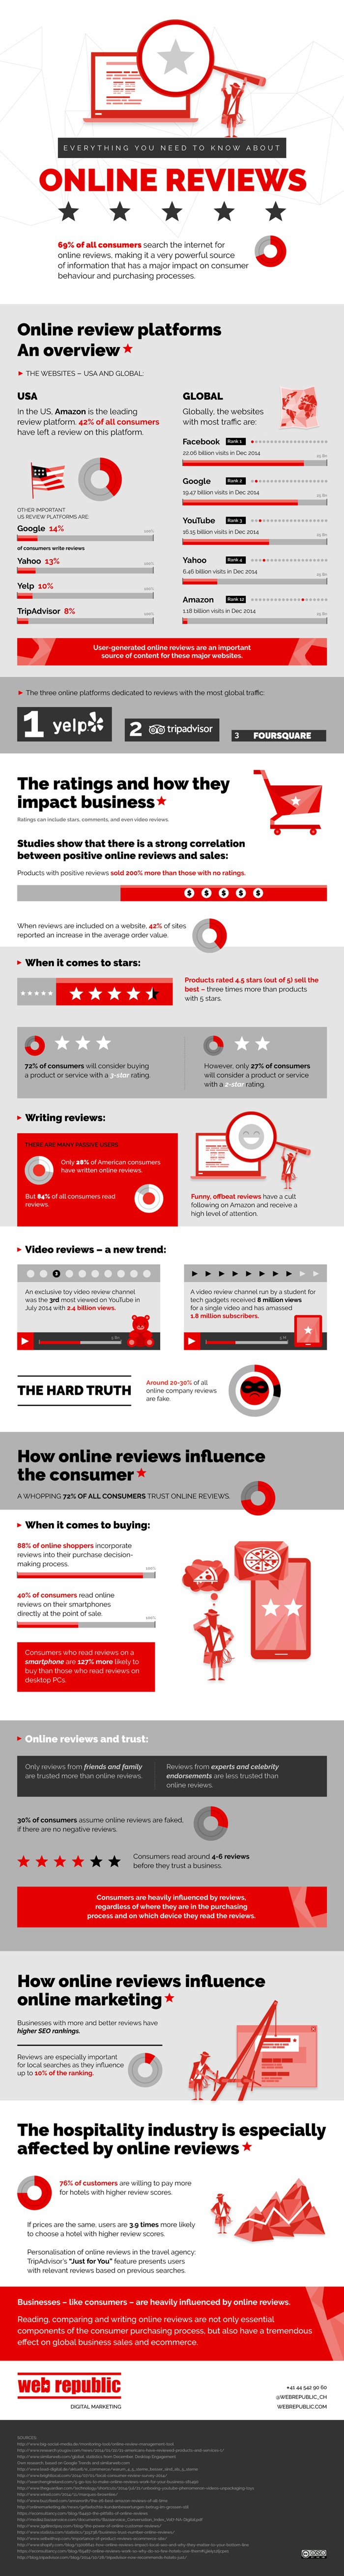 Everything You Need to Know About Online Reviews